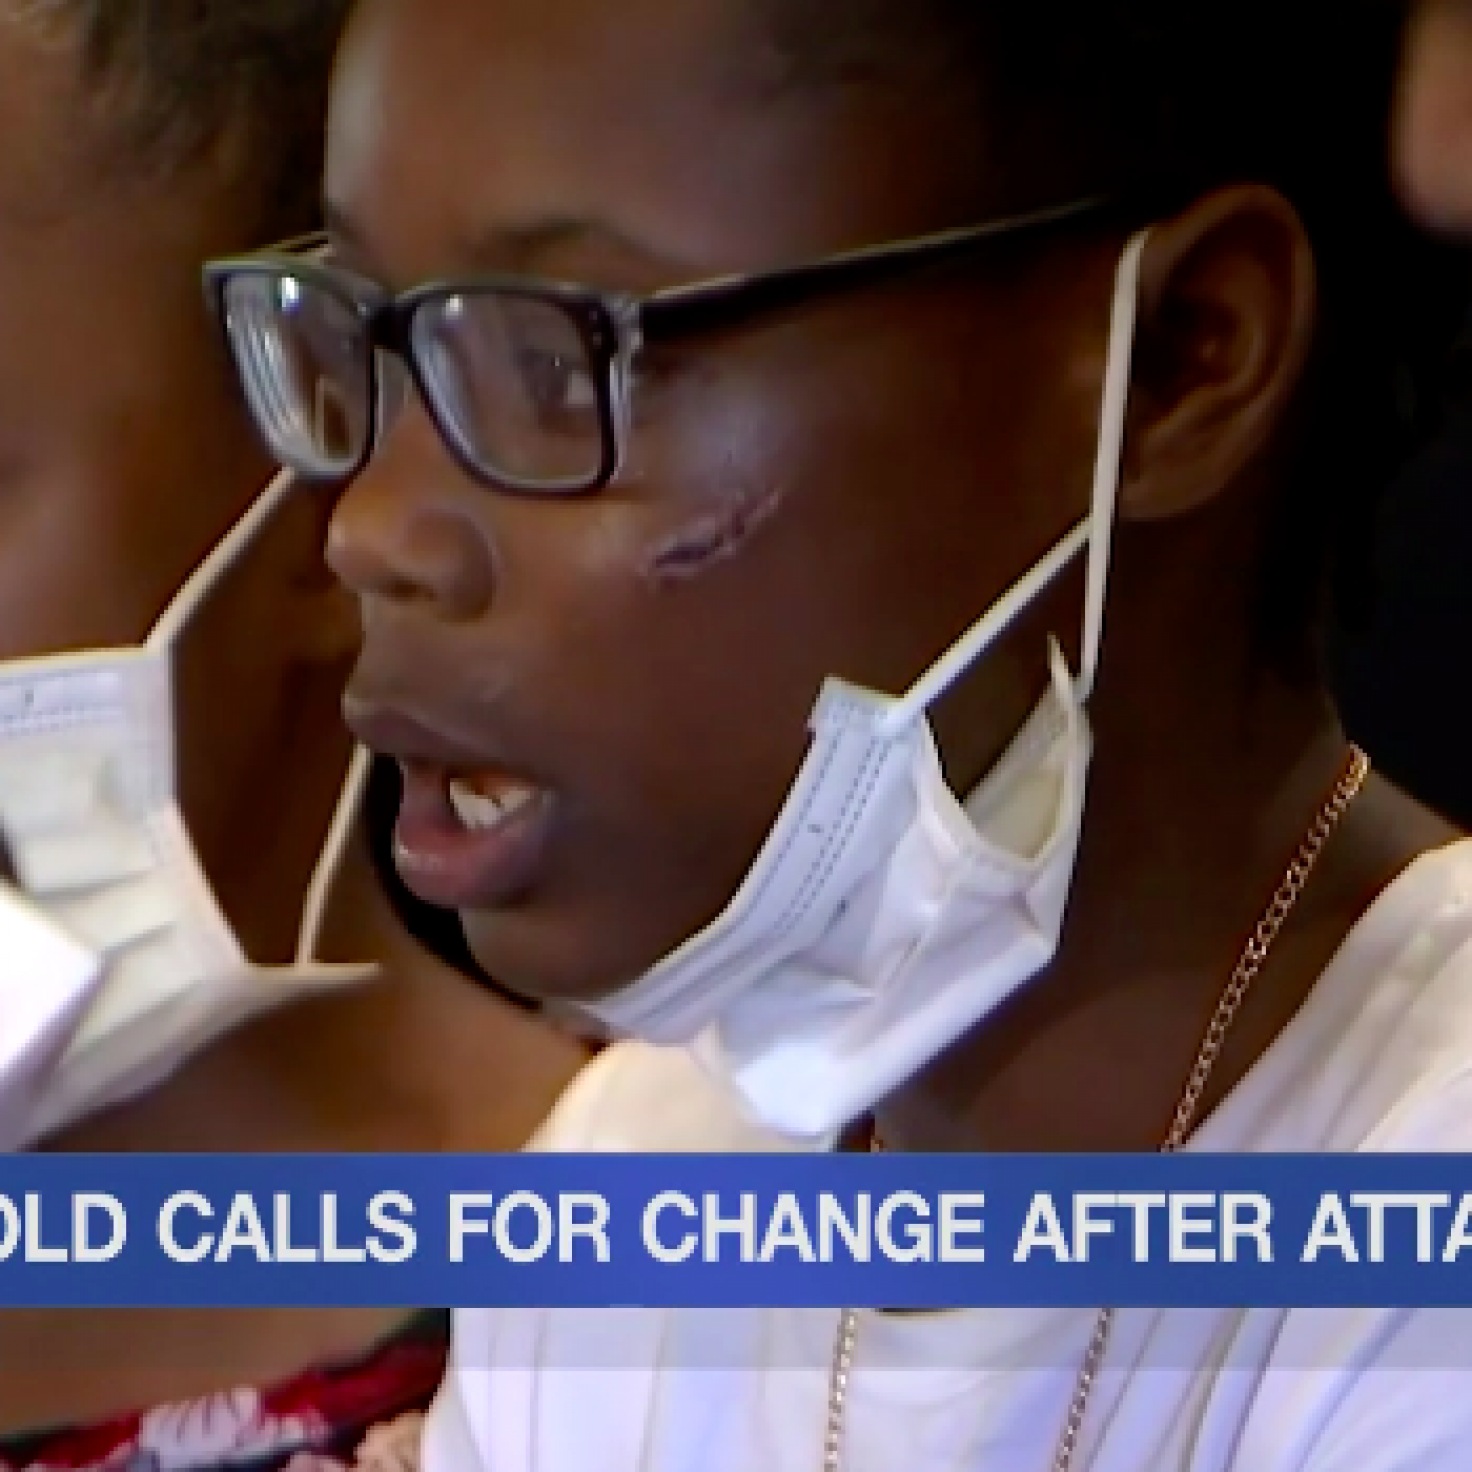 Kansas 11-Year-Old Victim Of Racist Attack, Family Says